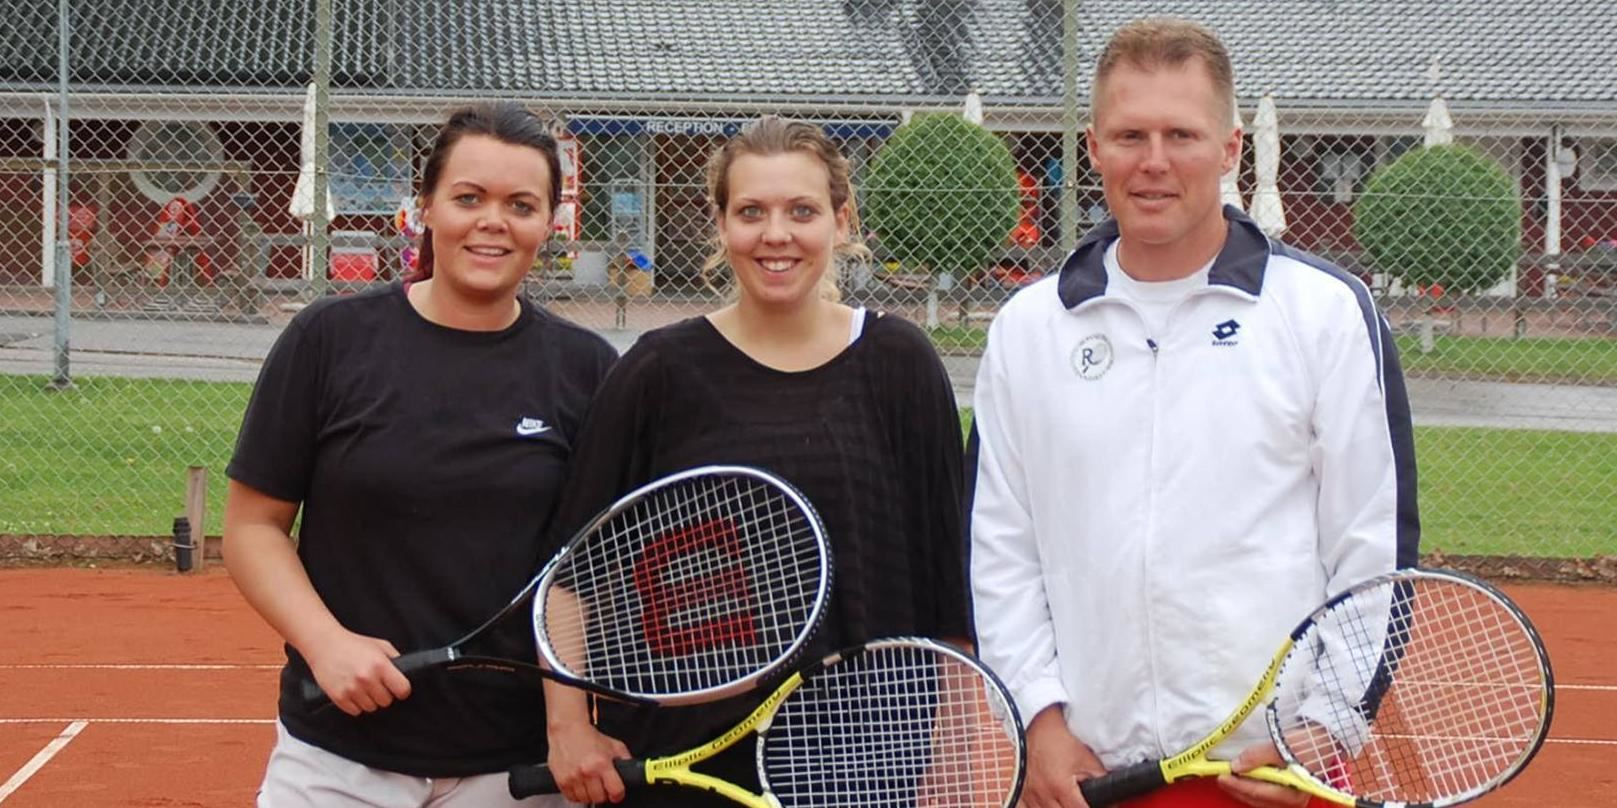 Tennis coach at Tingsryd Resord